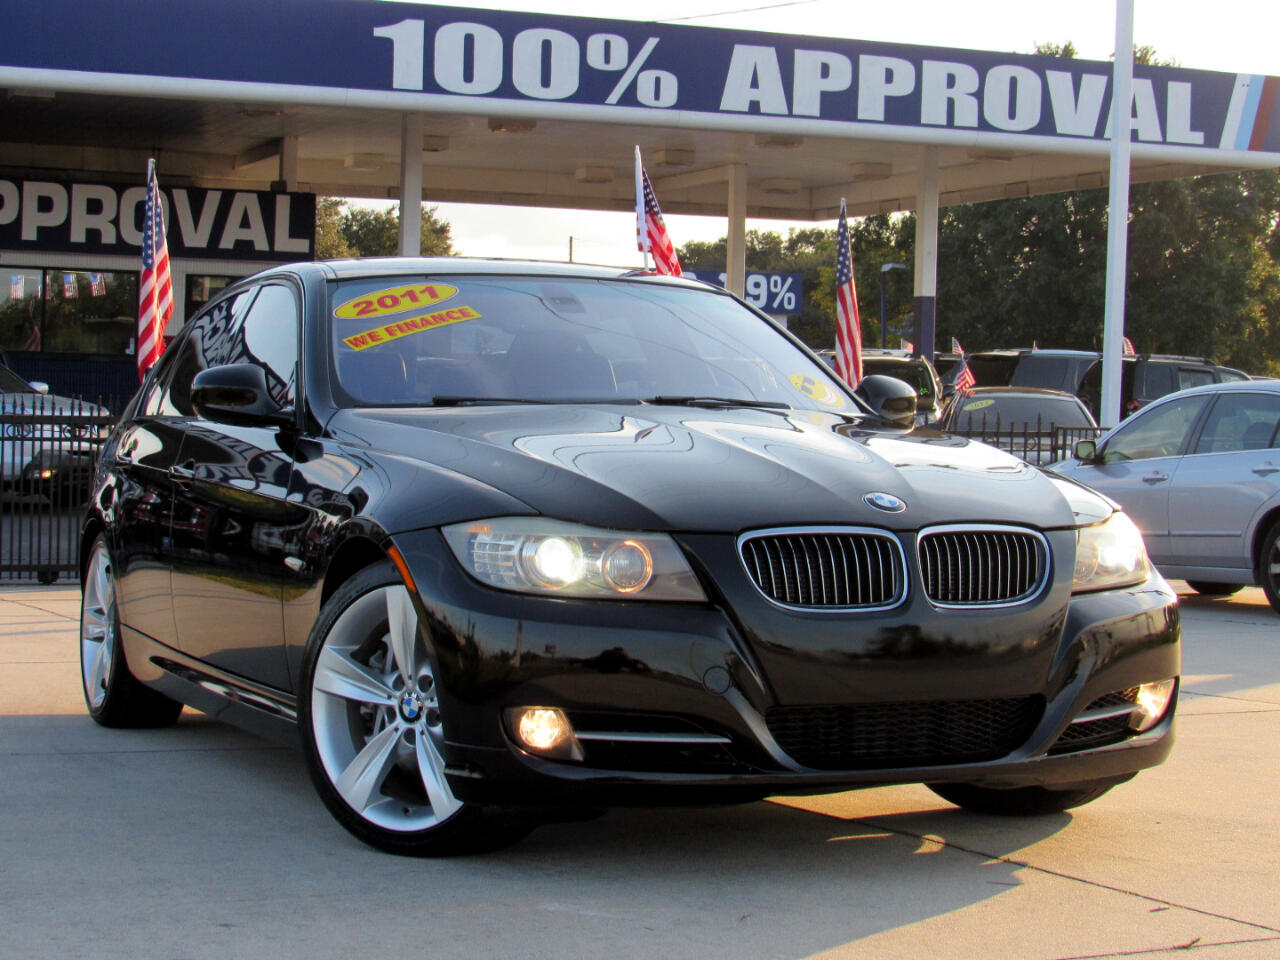 BMW 3 Series 4dr Sdn 335i RWD South Africa 2011